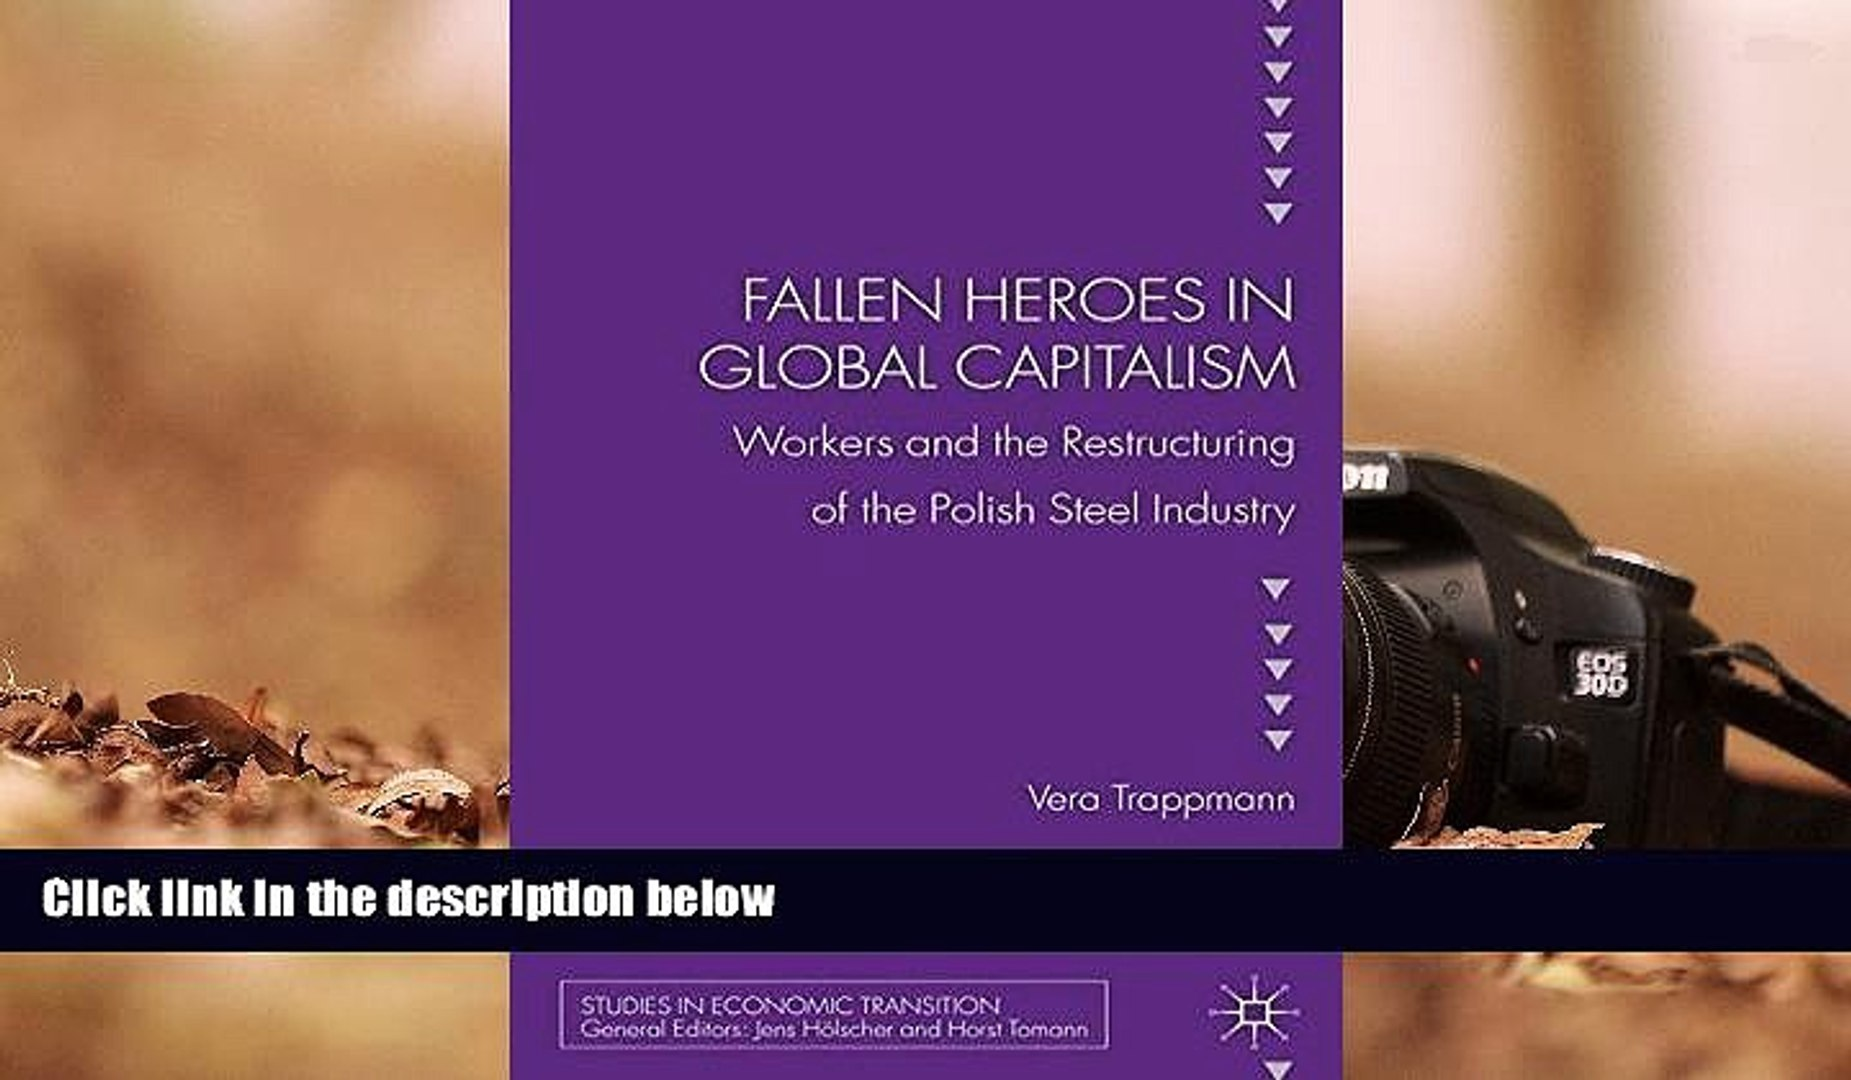 PDF  Fallen heroes in global capitalism: Workers and the Restructuring of the Polish Steel